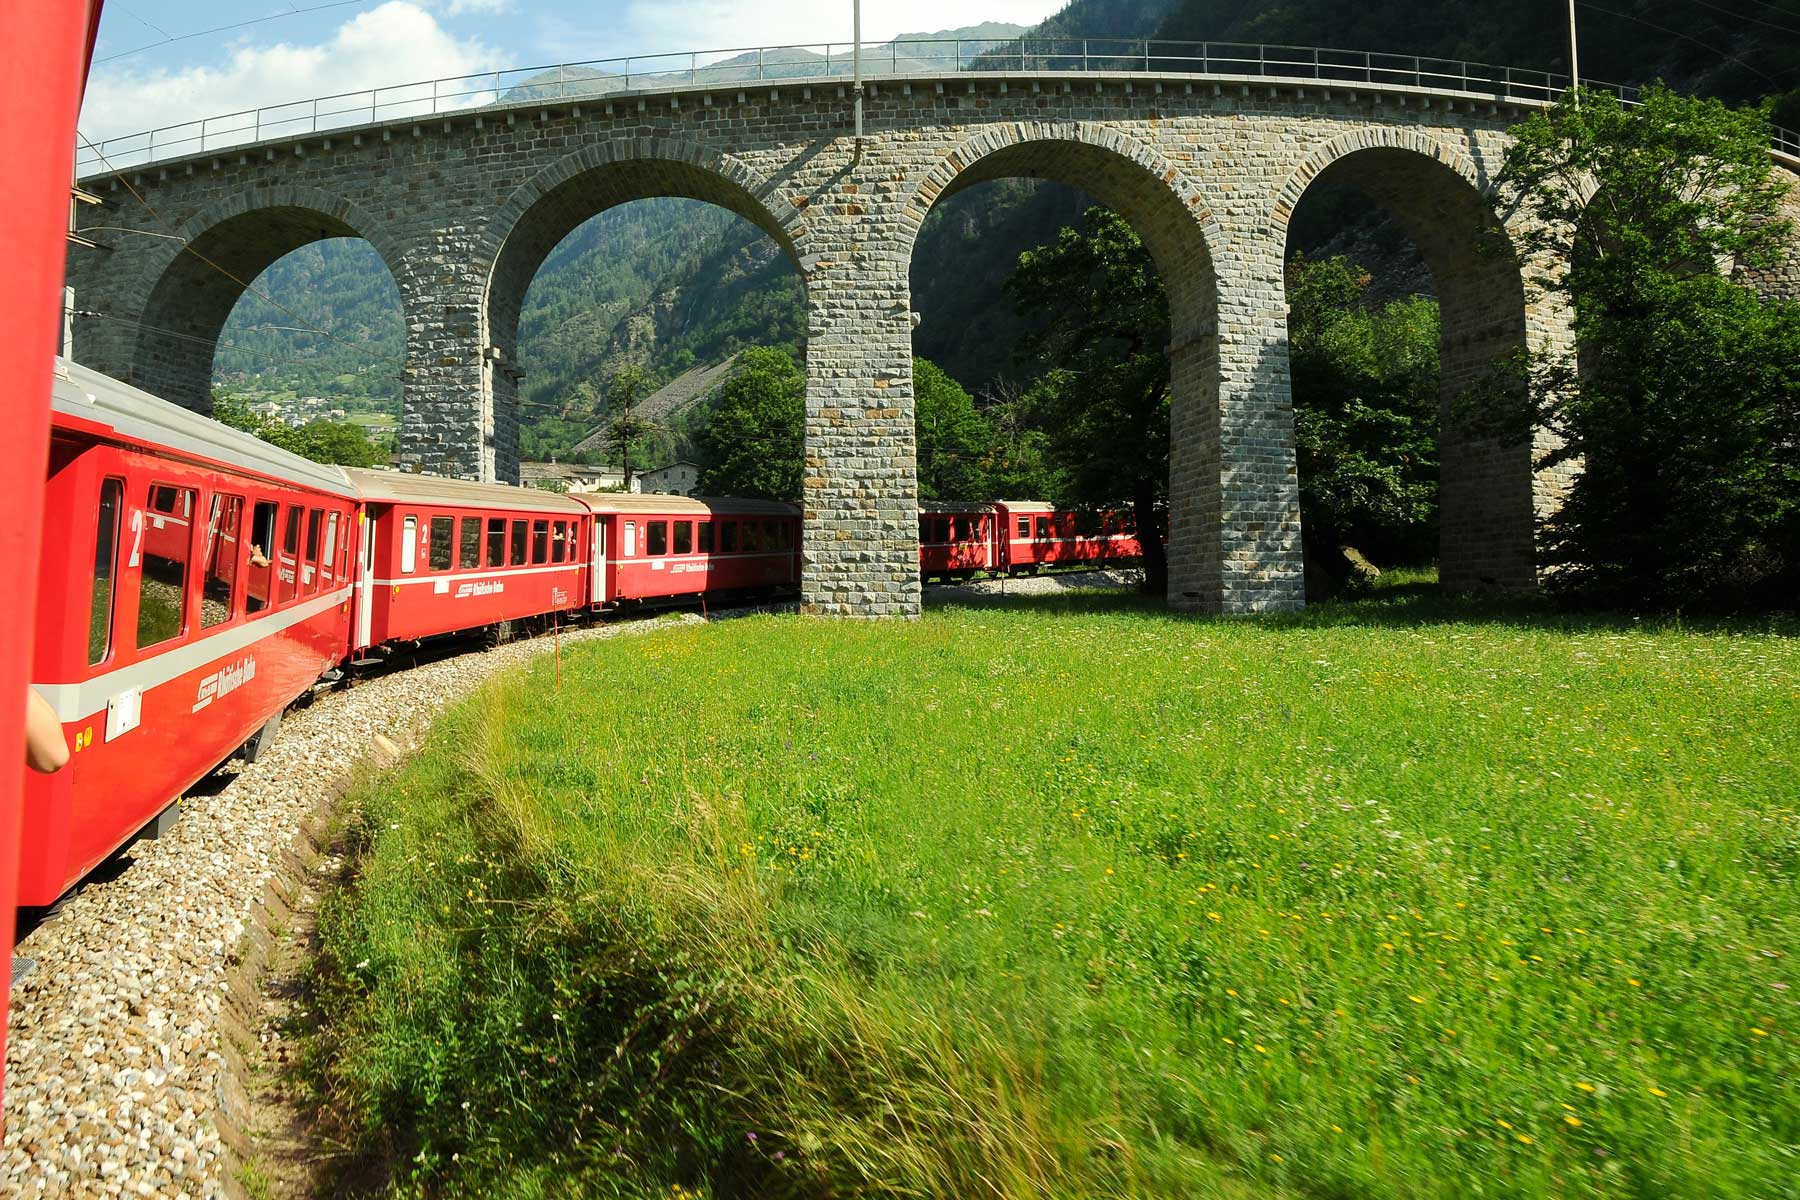 Swiss Red Train Bernina Express pass on Brusio Viaduct. It is a spectacular helicoidal stone bridge that fits the surrounding landscape and is located on the Bernina railway not far from Brusio railway station in Canton Grisons, Italy.